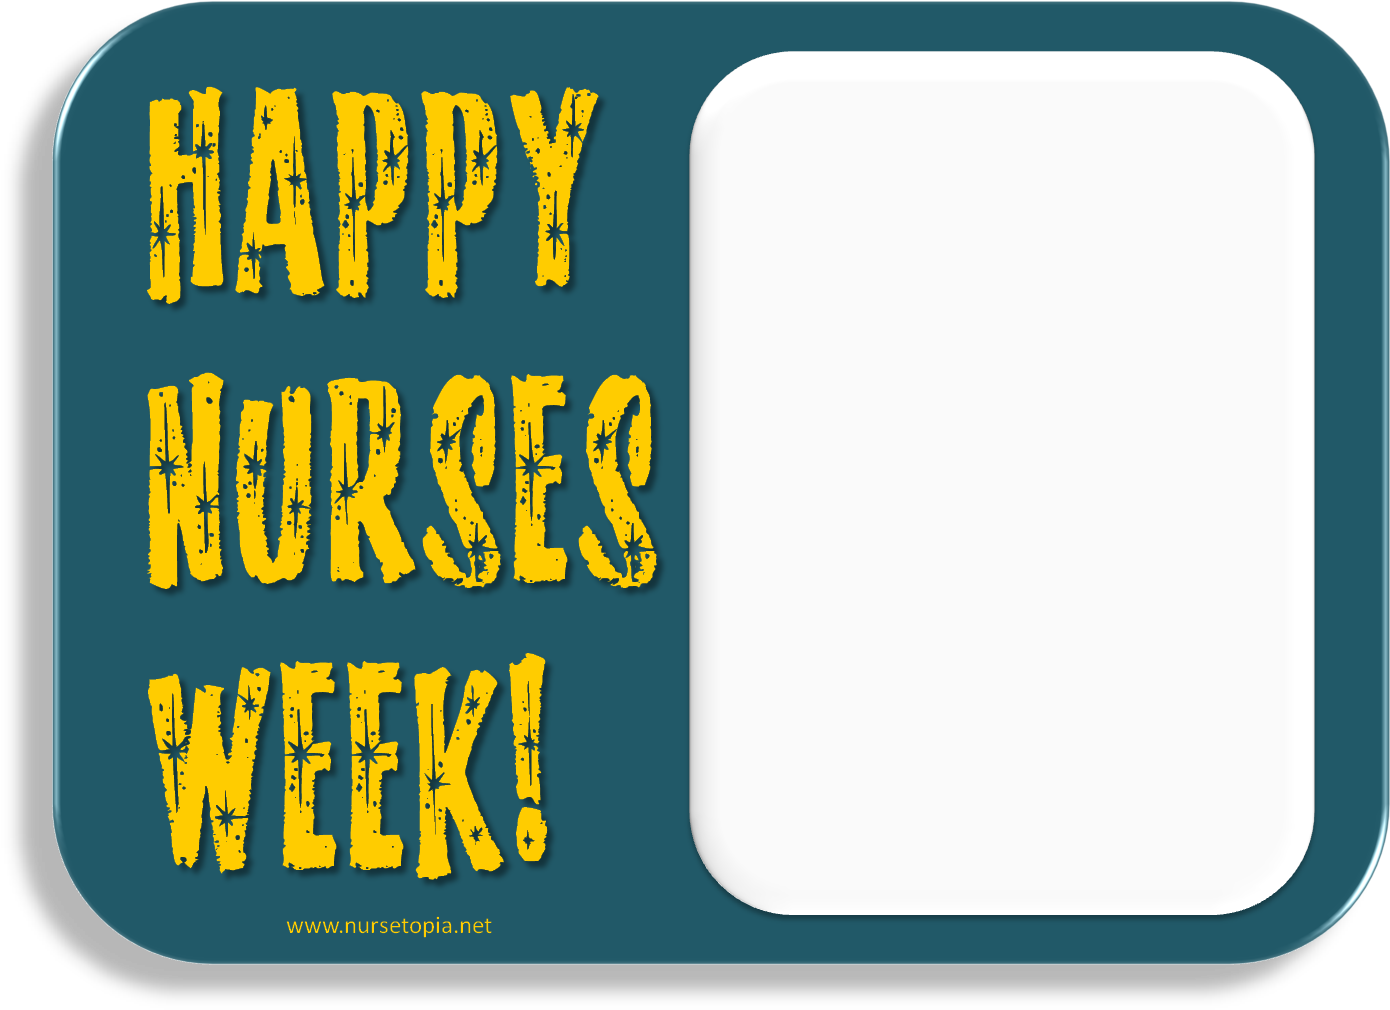 Free clipart nurses week transparent Download - Free Nurses Week Printables , Transparent Cartoon - Jing.fm transparent